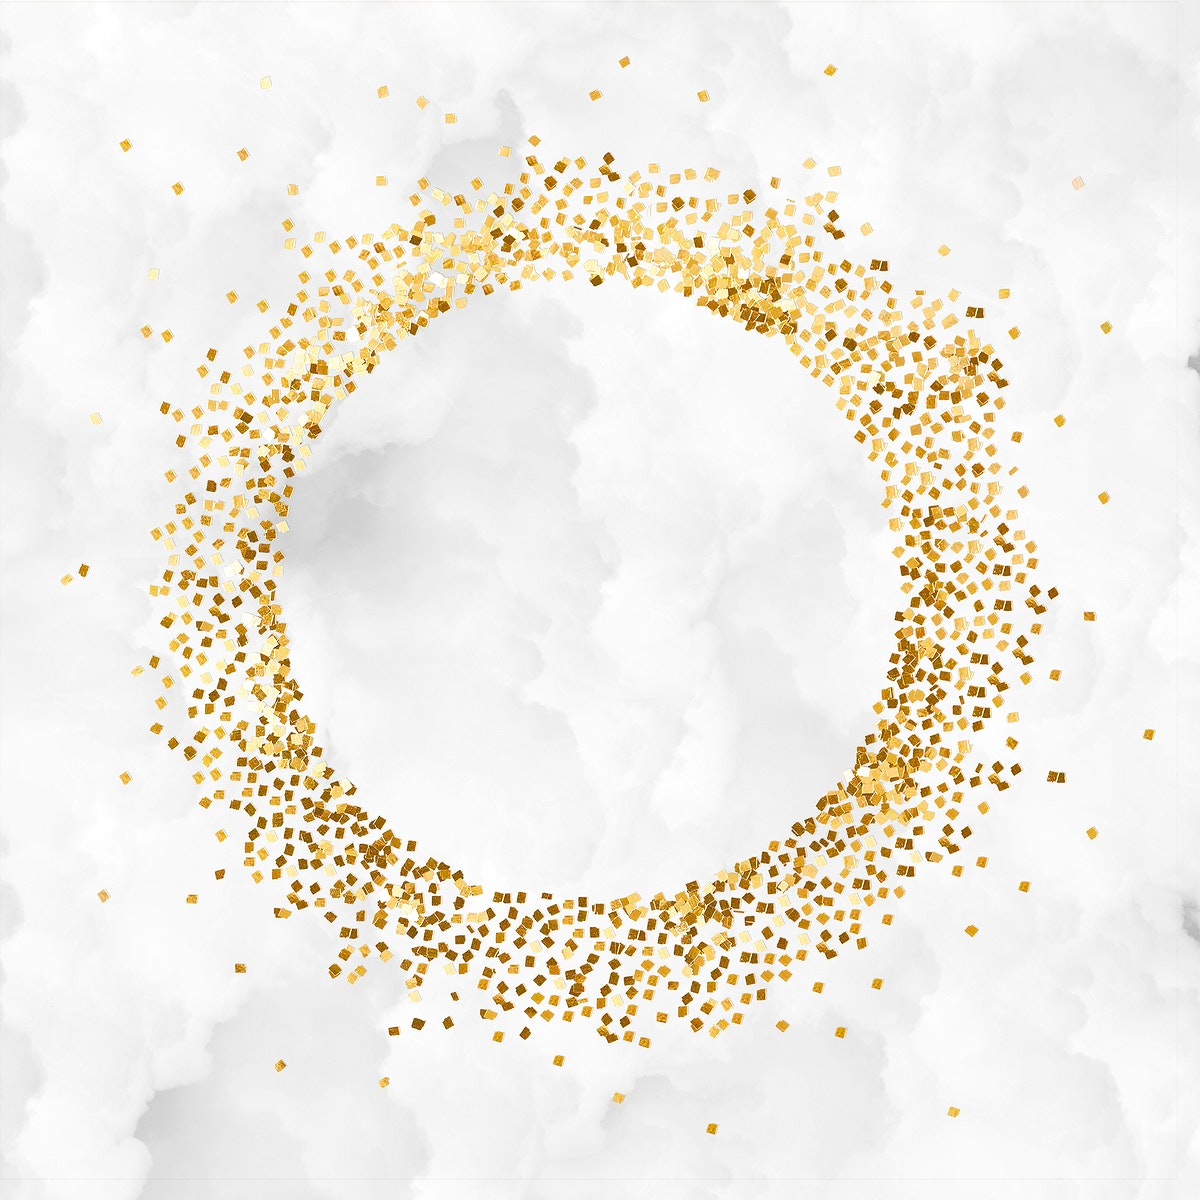 Glittery round frame on a crumpled white paper textured background